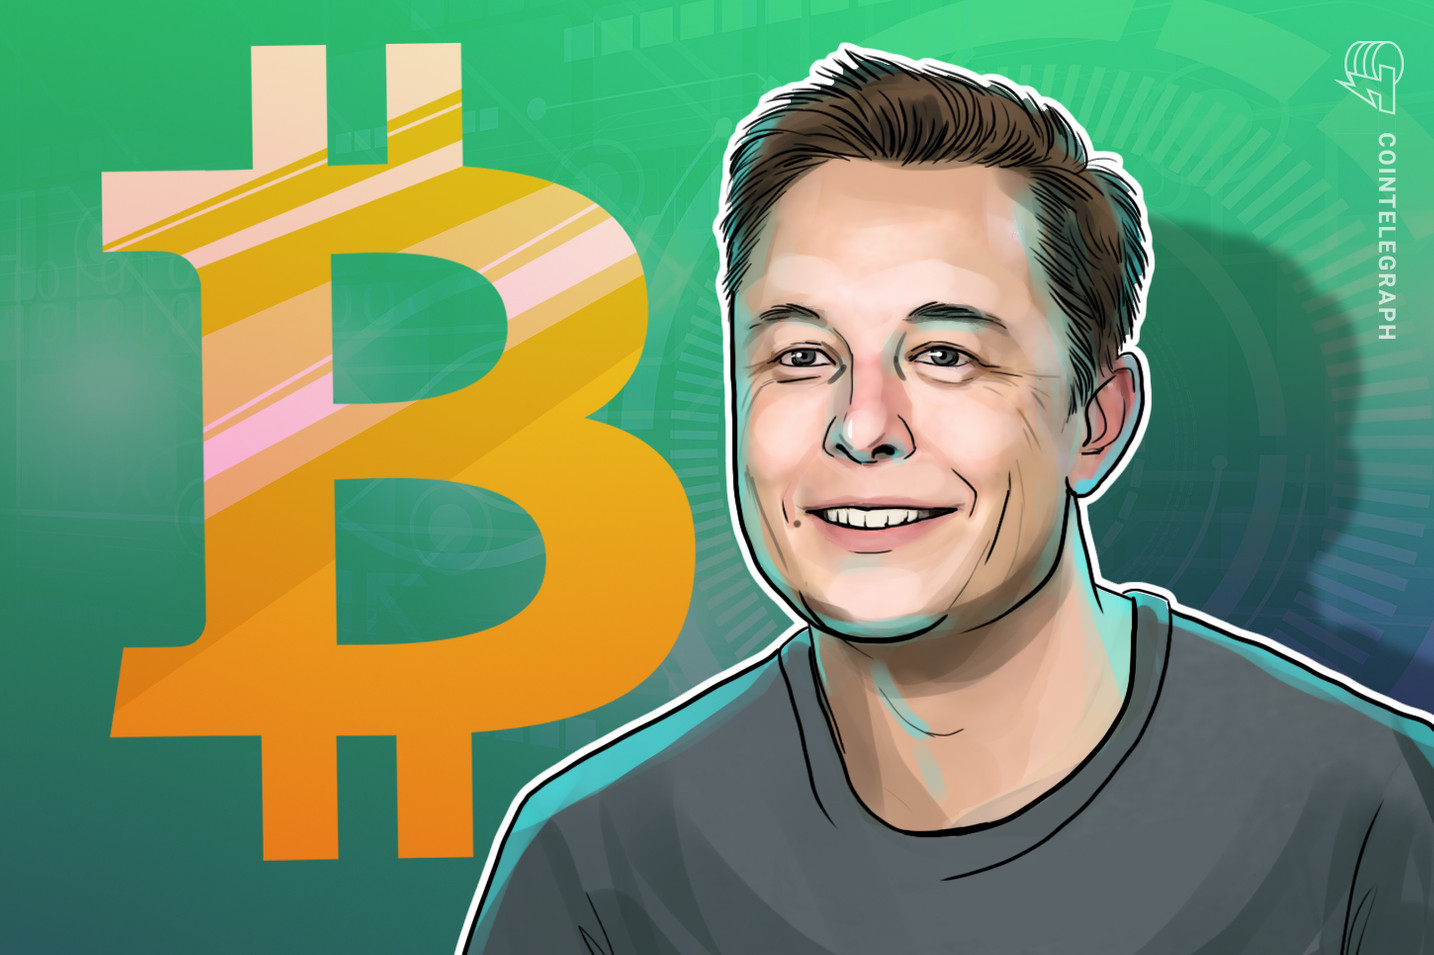 'I have not sold any of my Bitcoin': Elon Musk